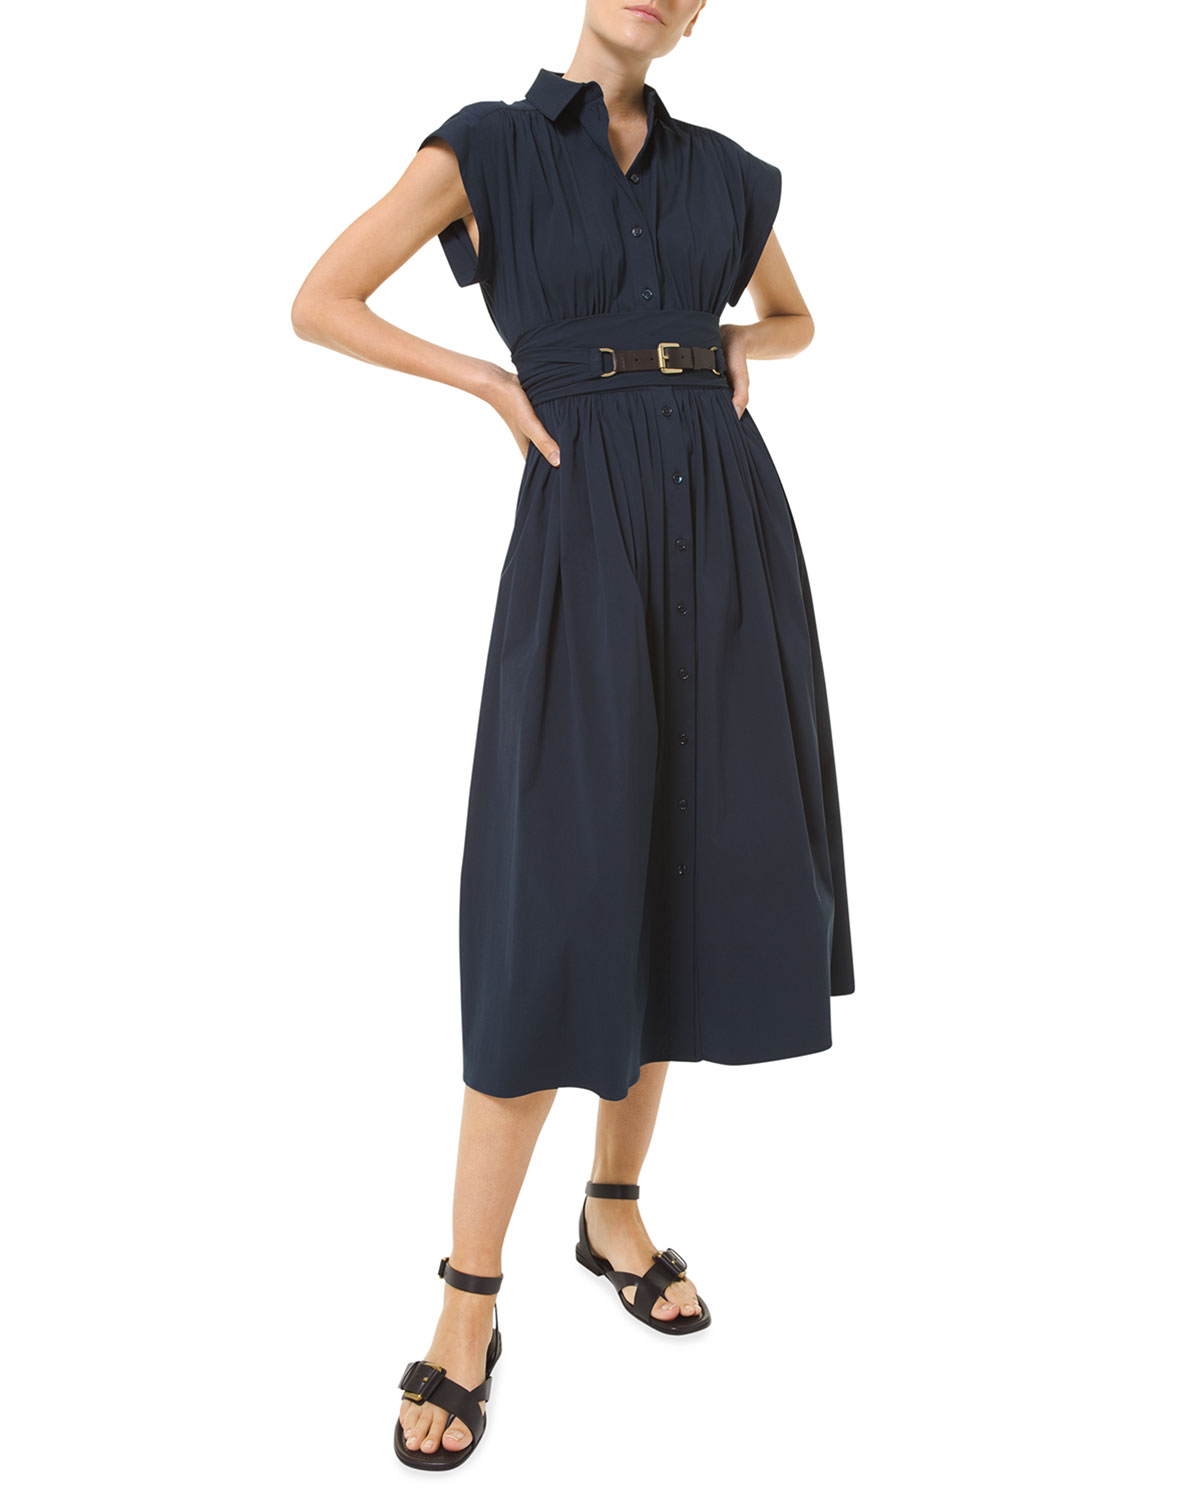 Michael Kors FIT-&-FLARE POPLIN LEATHER BELTED MIDI DRESS